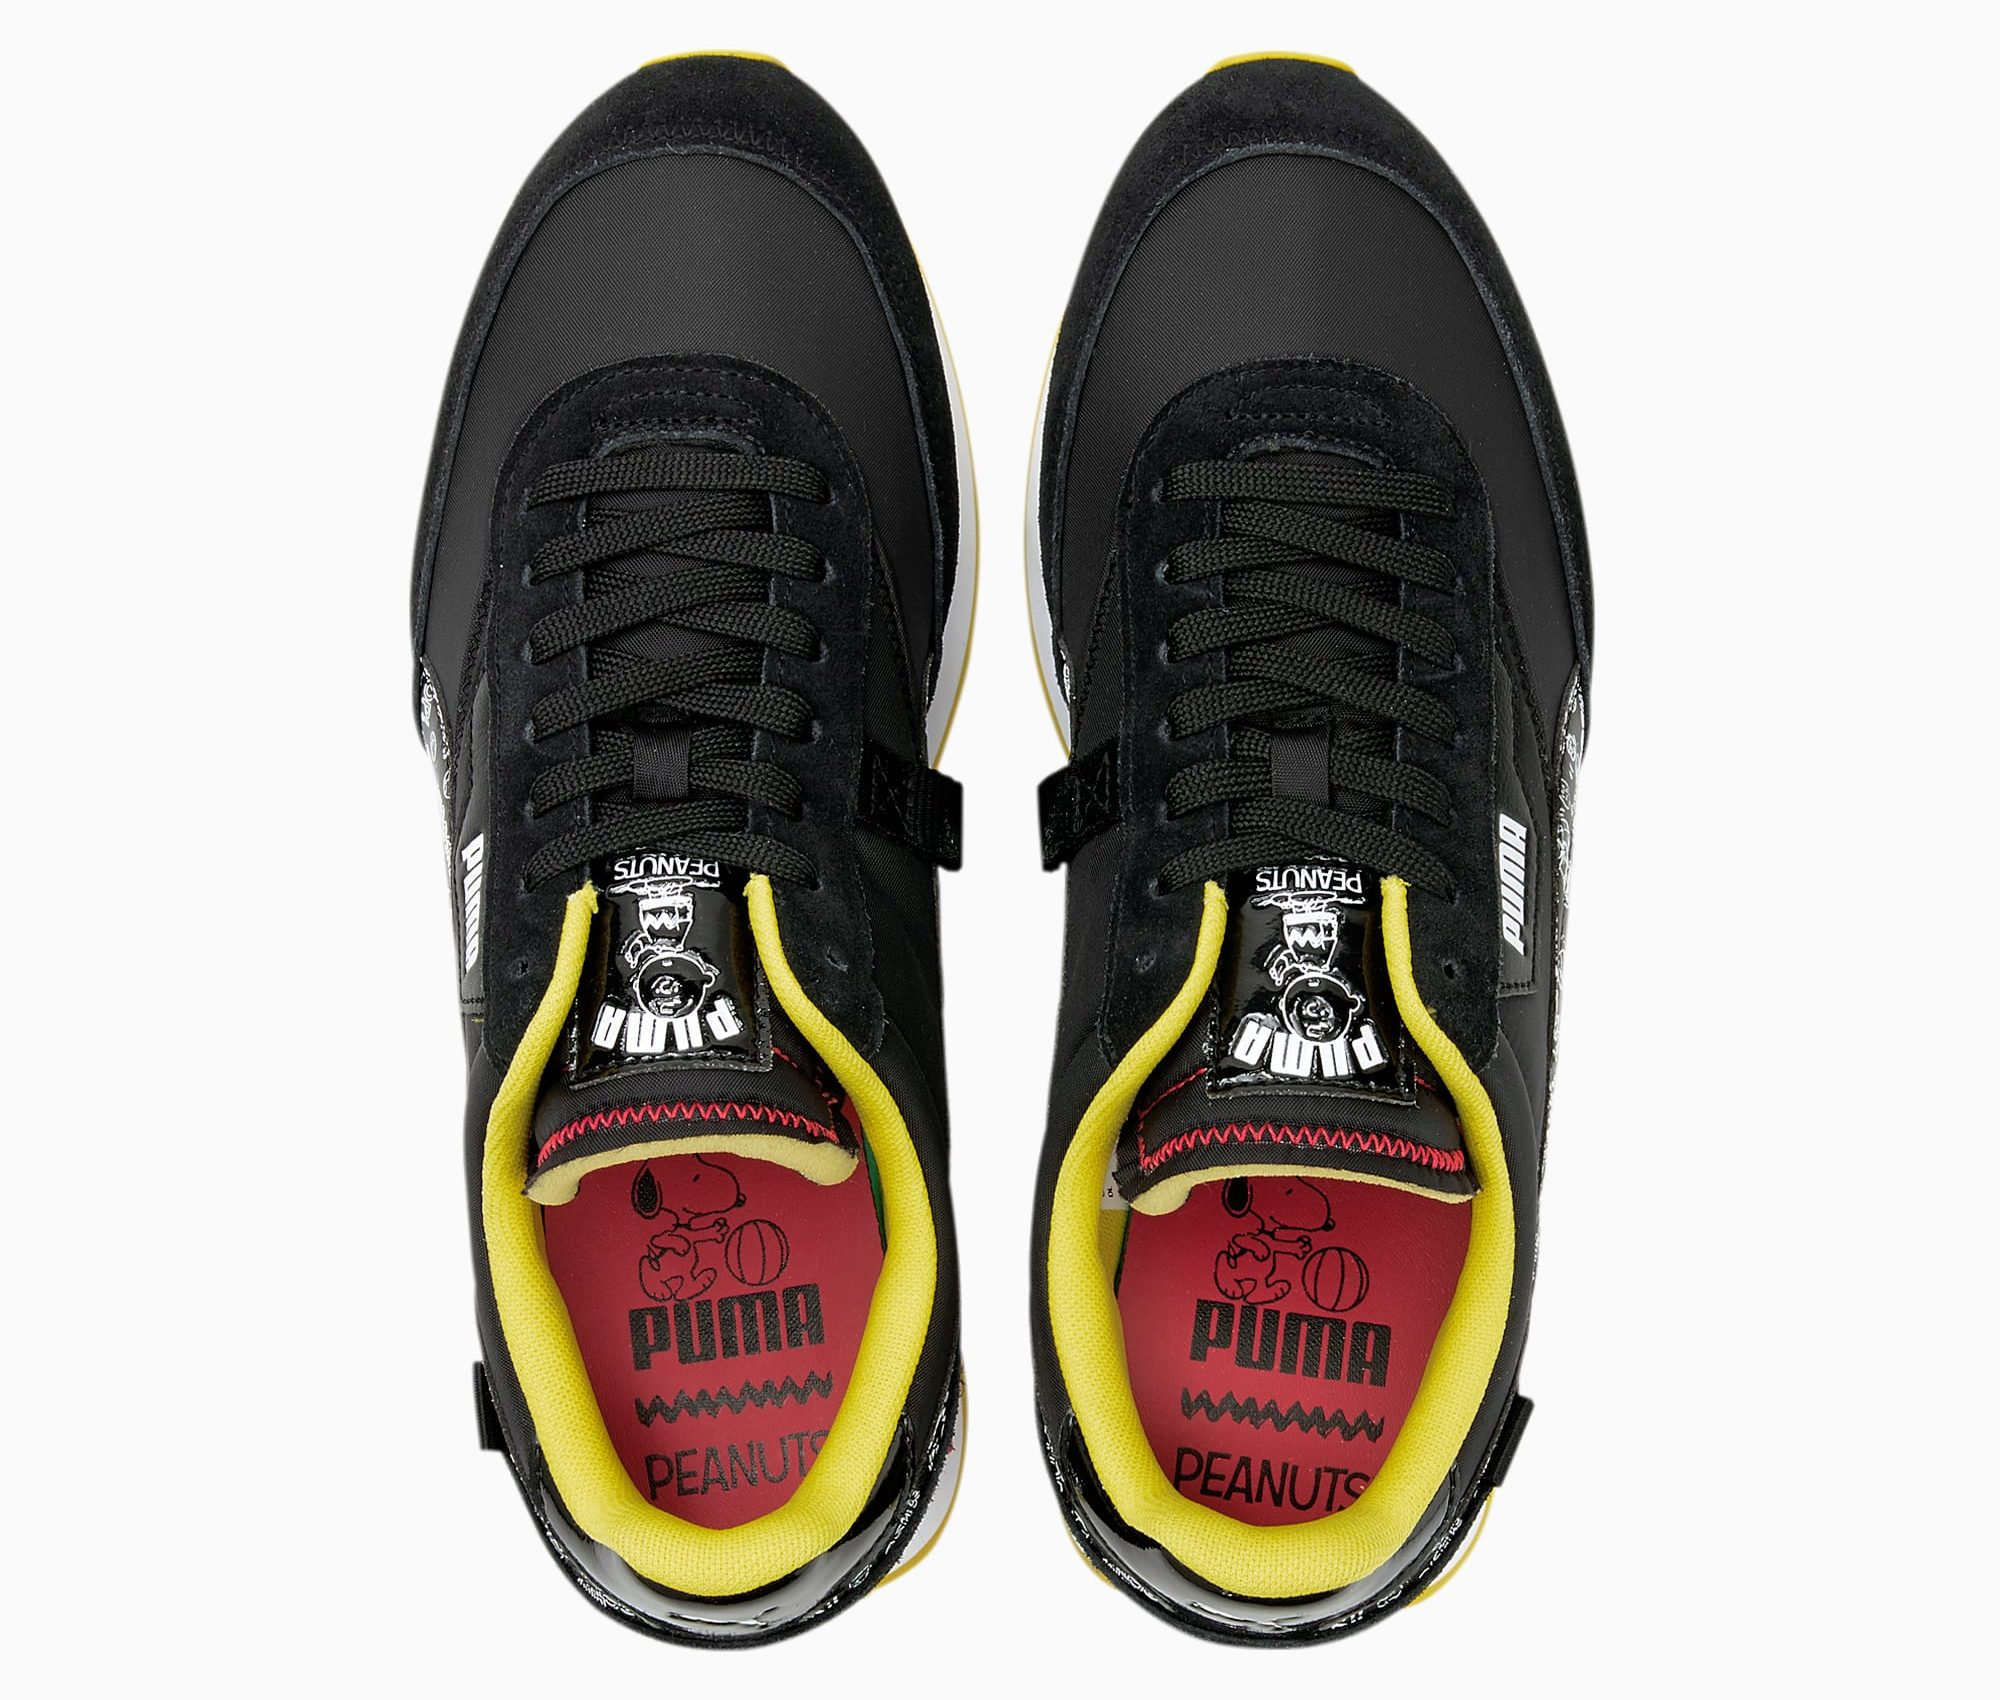 PUMA x PEANUTS Future Rider sneakers are now available 15